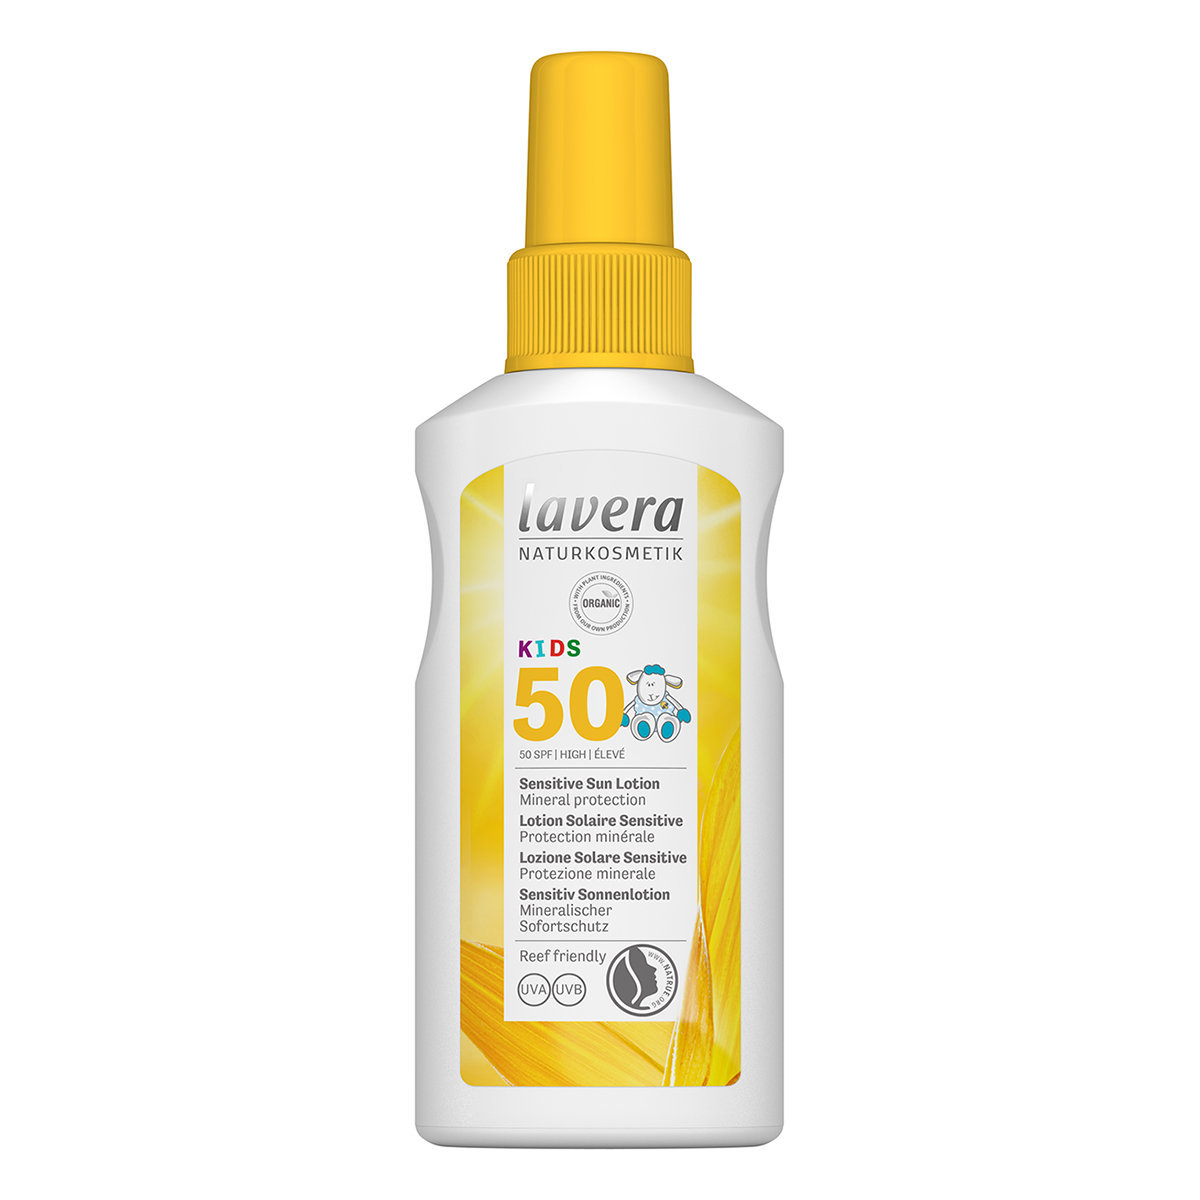 Kids' Sensitive Organic Sun Lotion SPF 50